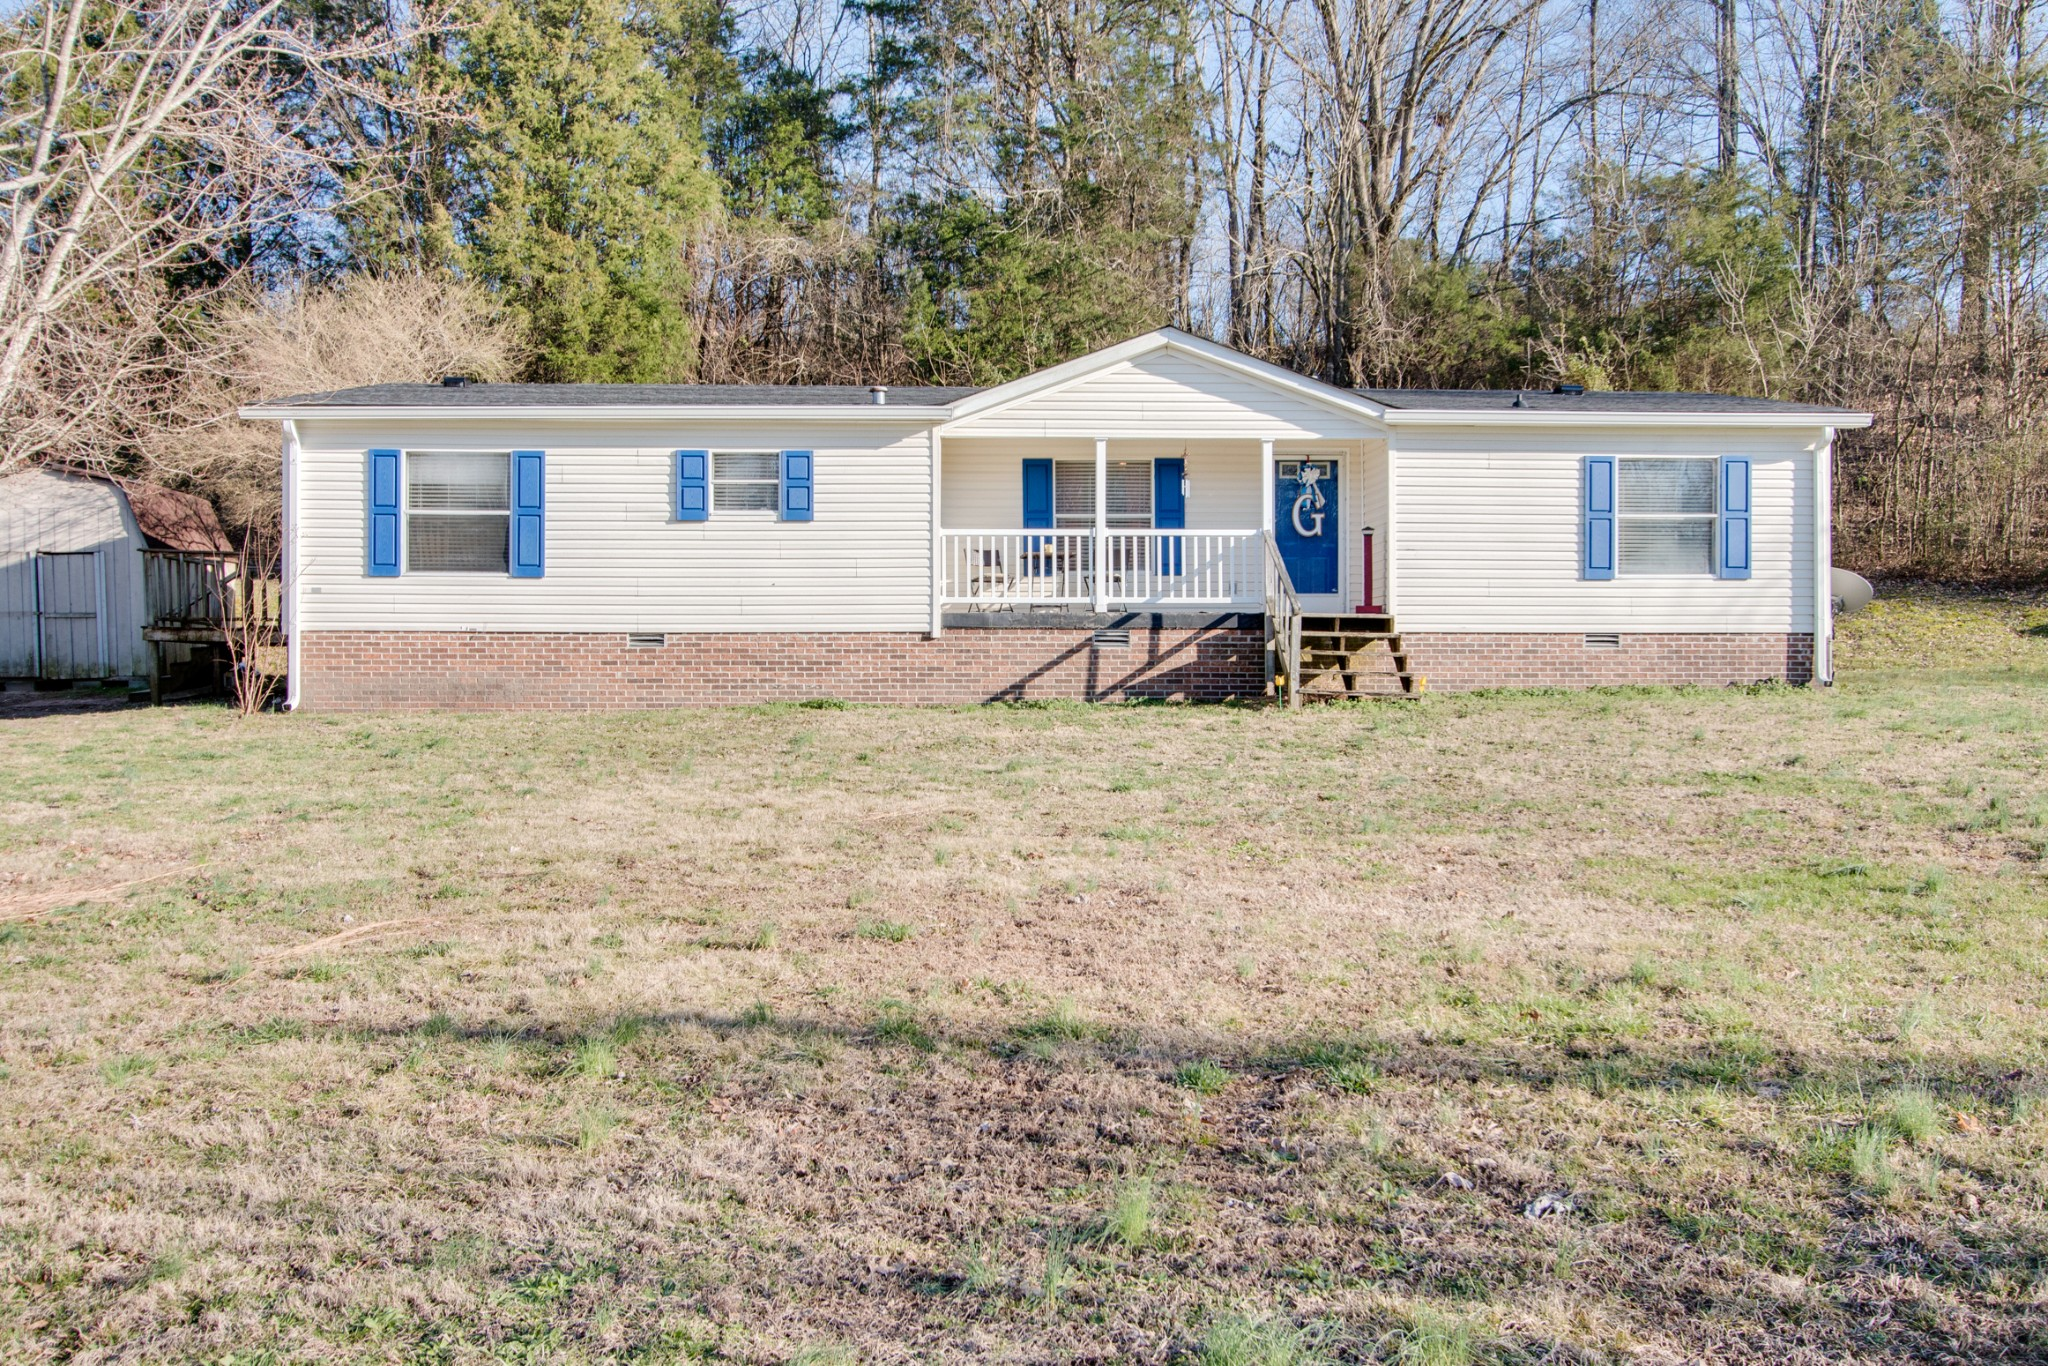 29 Cherry Cir, Brush Creek, TN 38547 - Brush Creek, TN real estate listing